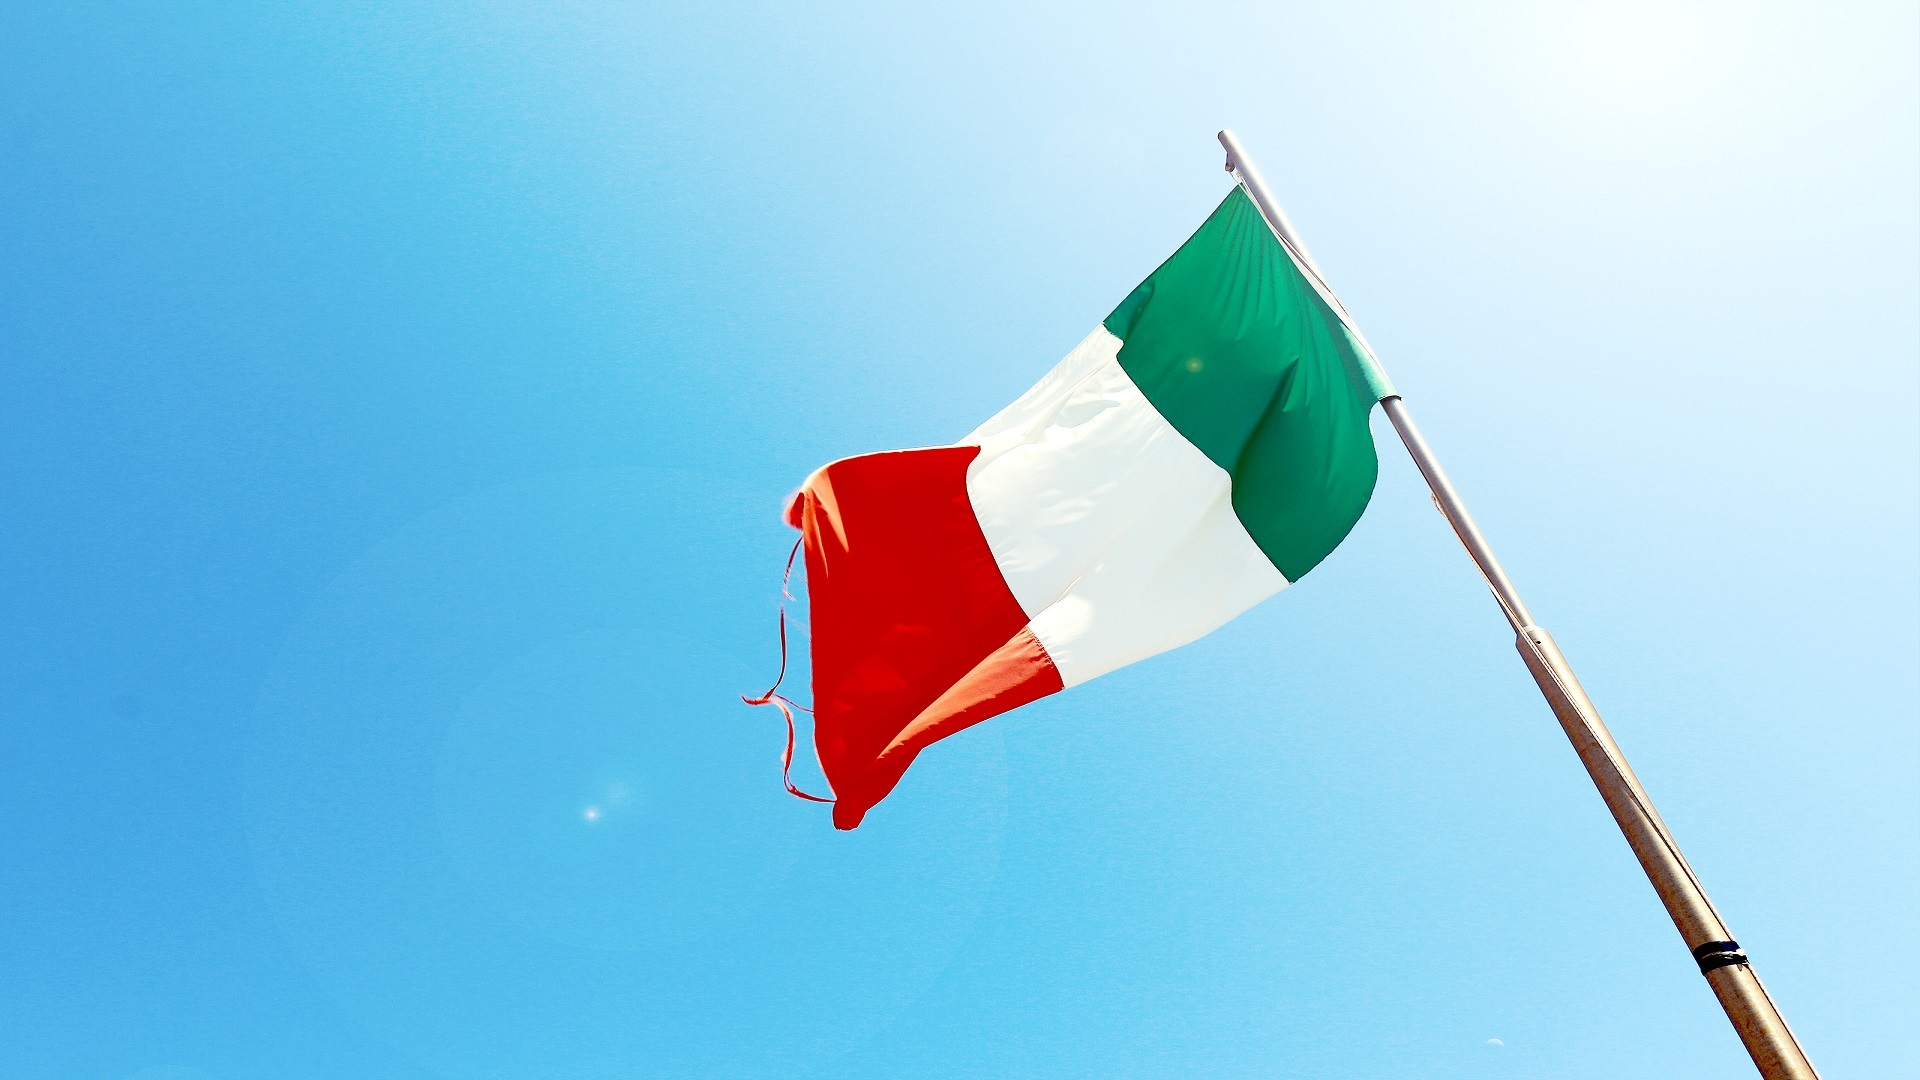 In Italy 1,865 CHP plants produce around 14 GW of power